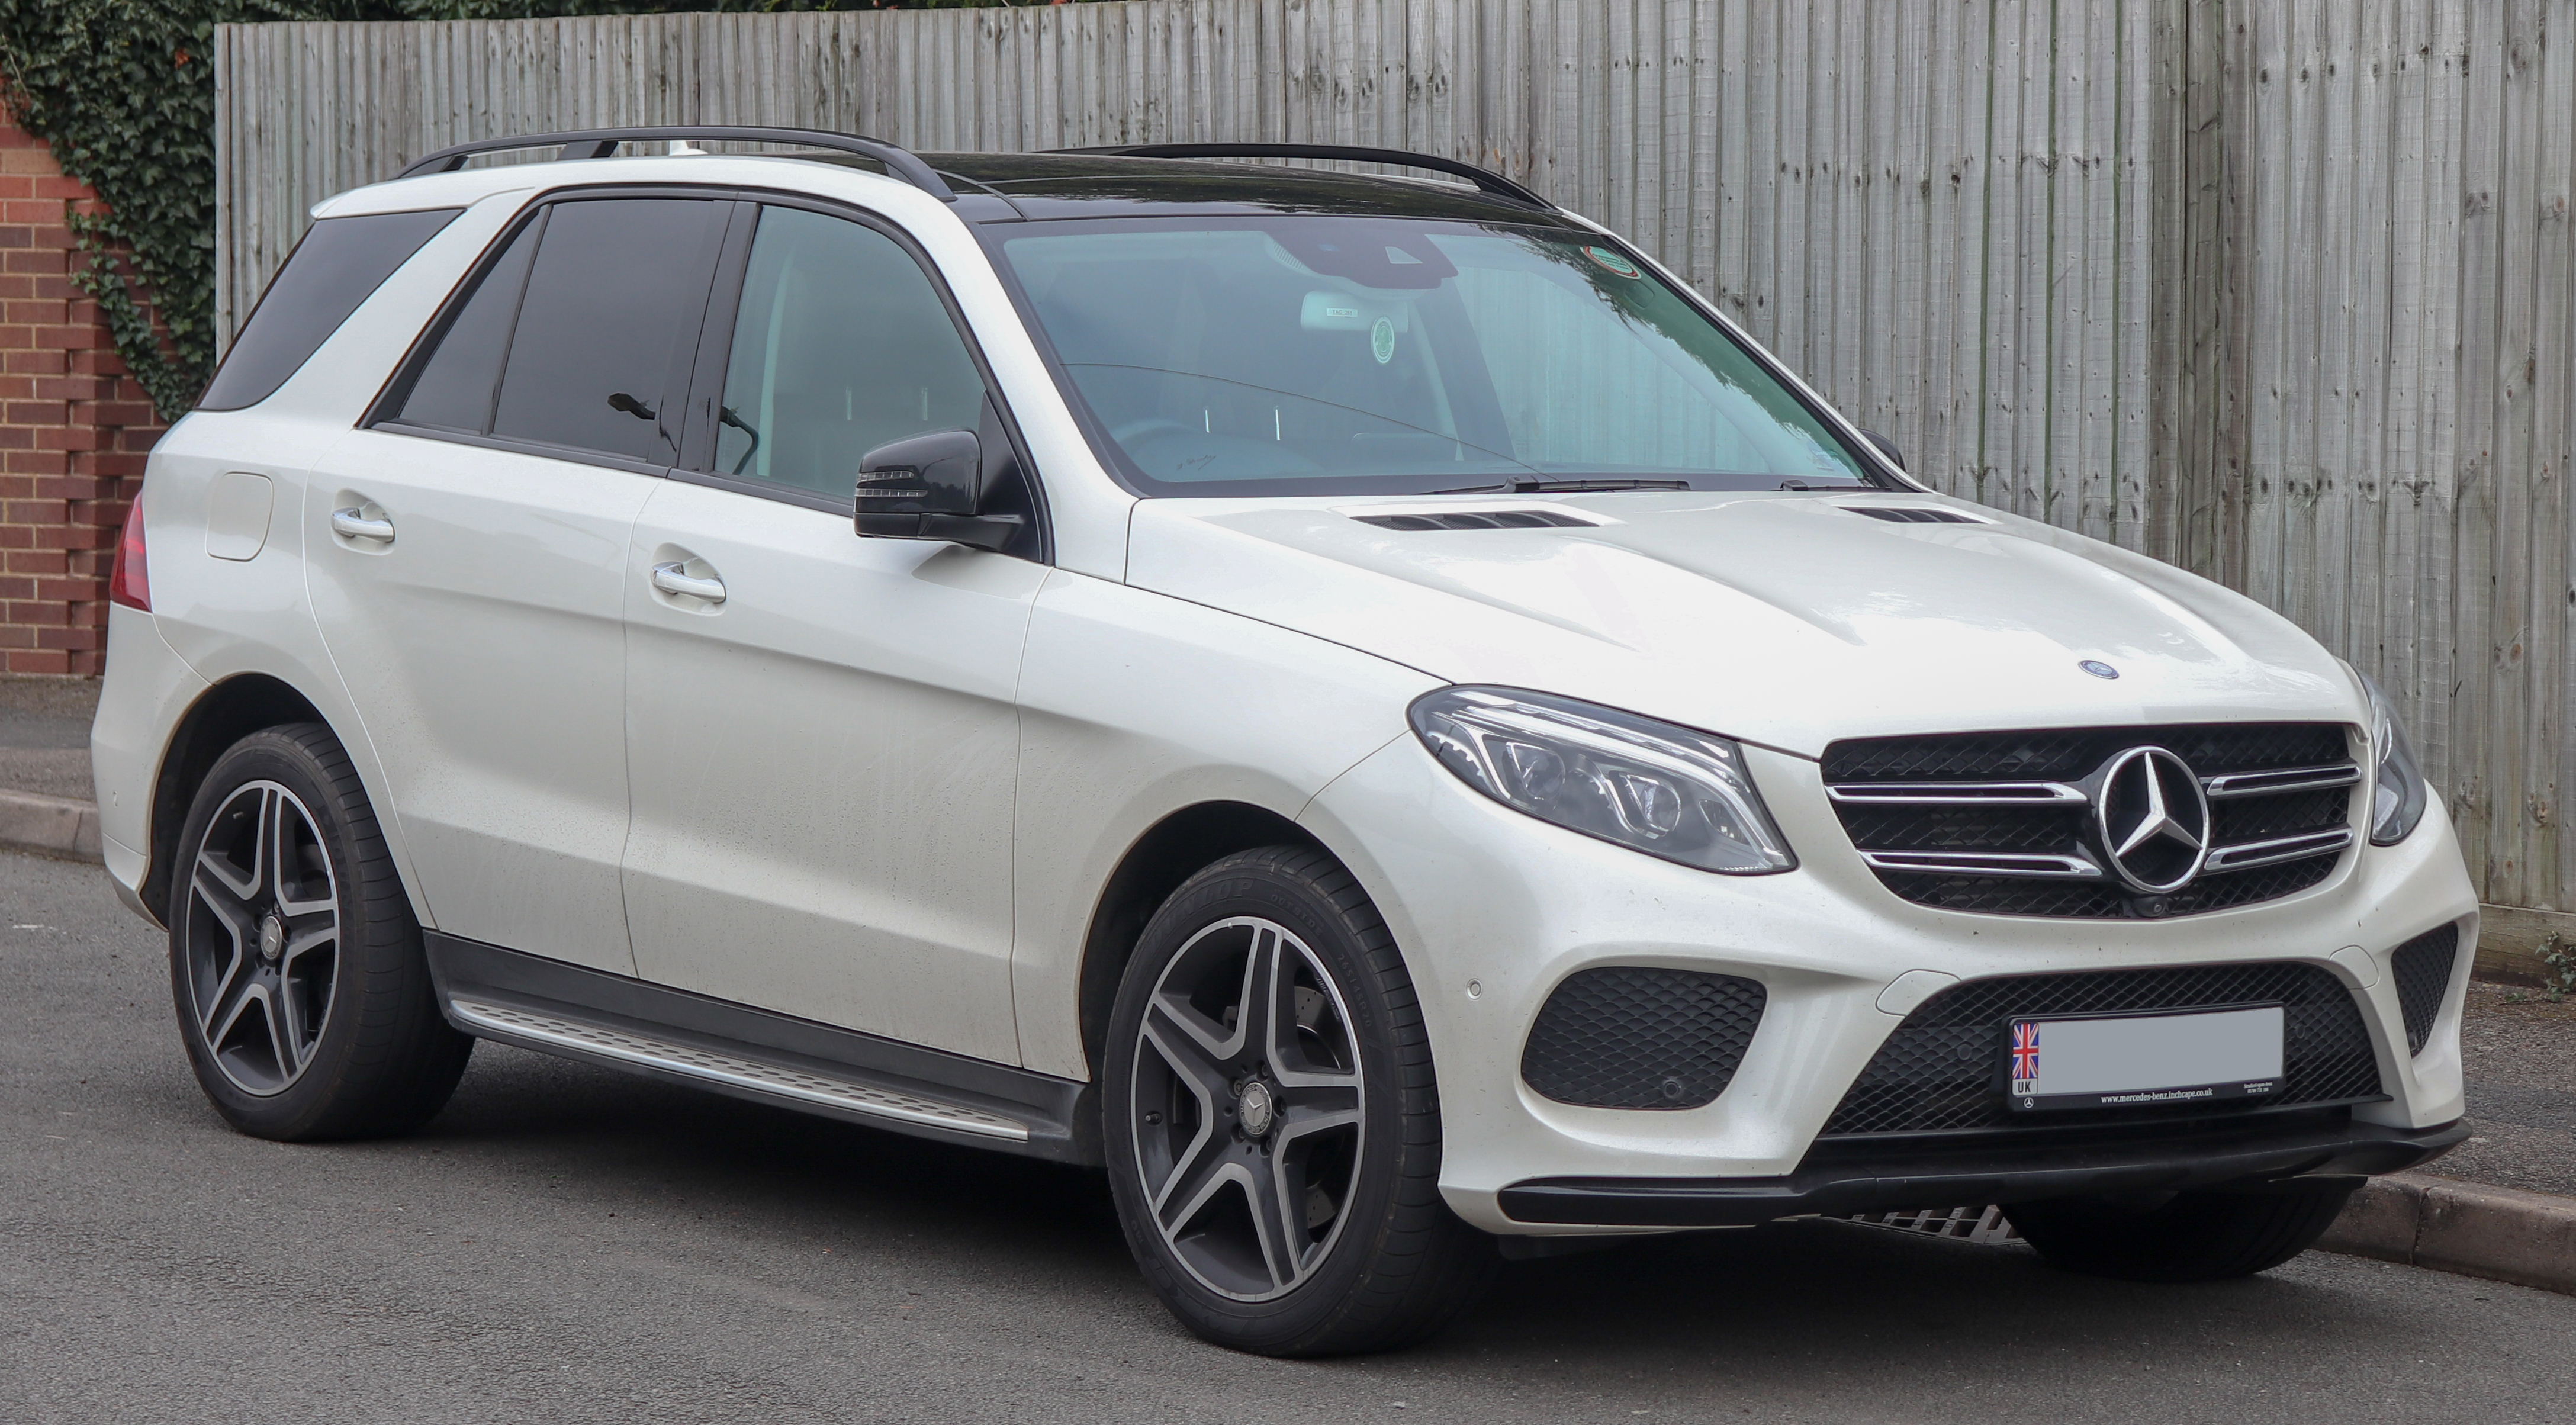 36 All New 2019 Mercedes Ml Class Price with 2019 Mercedes Ml Class